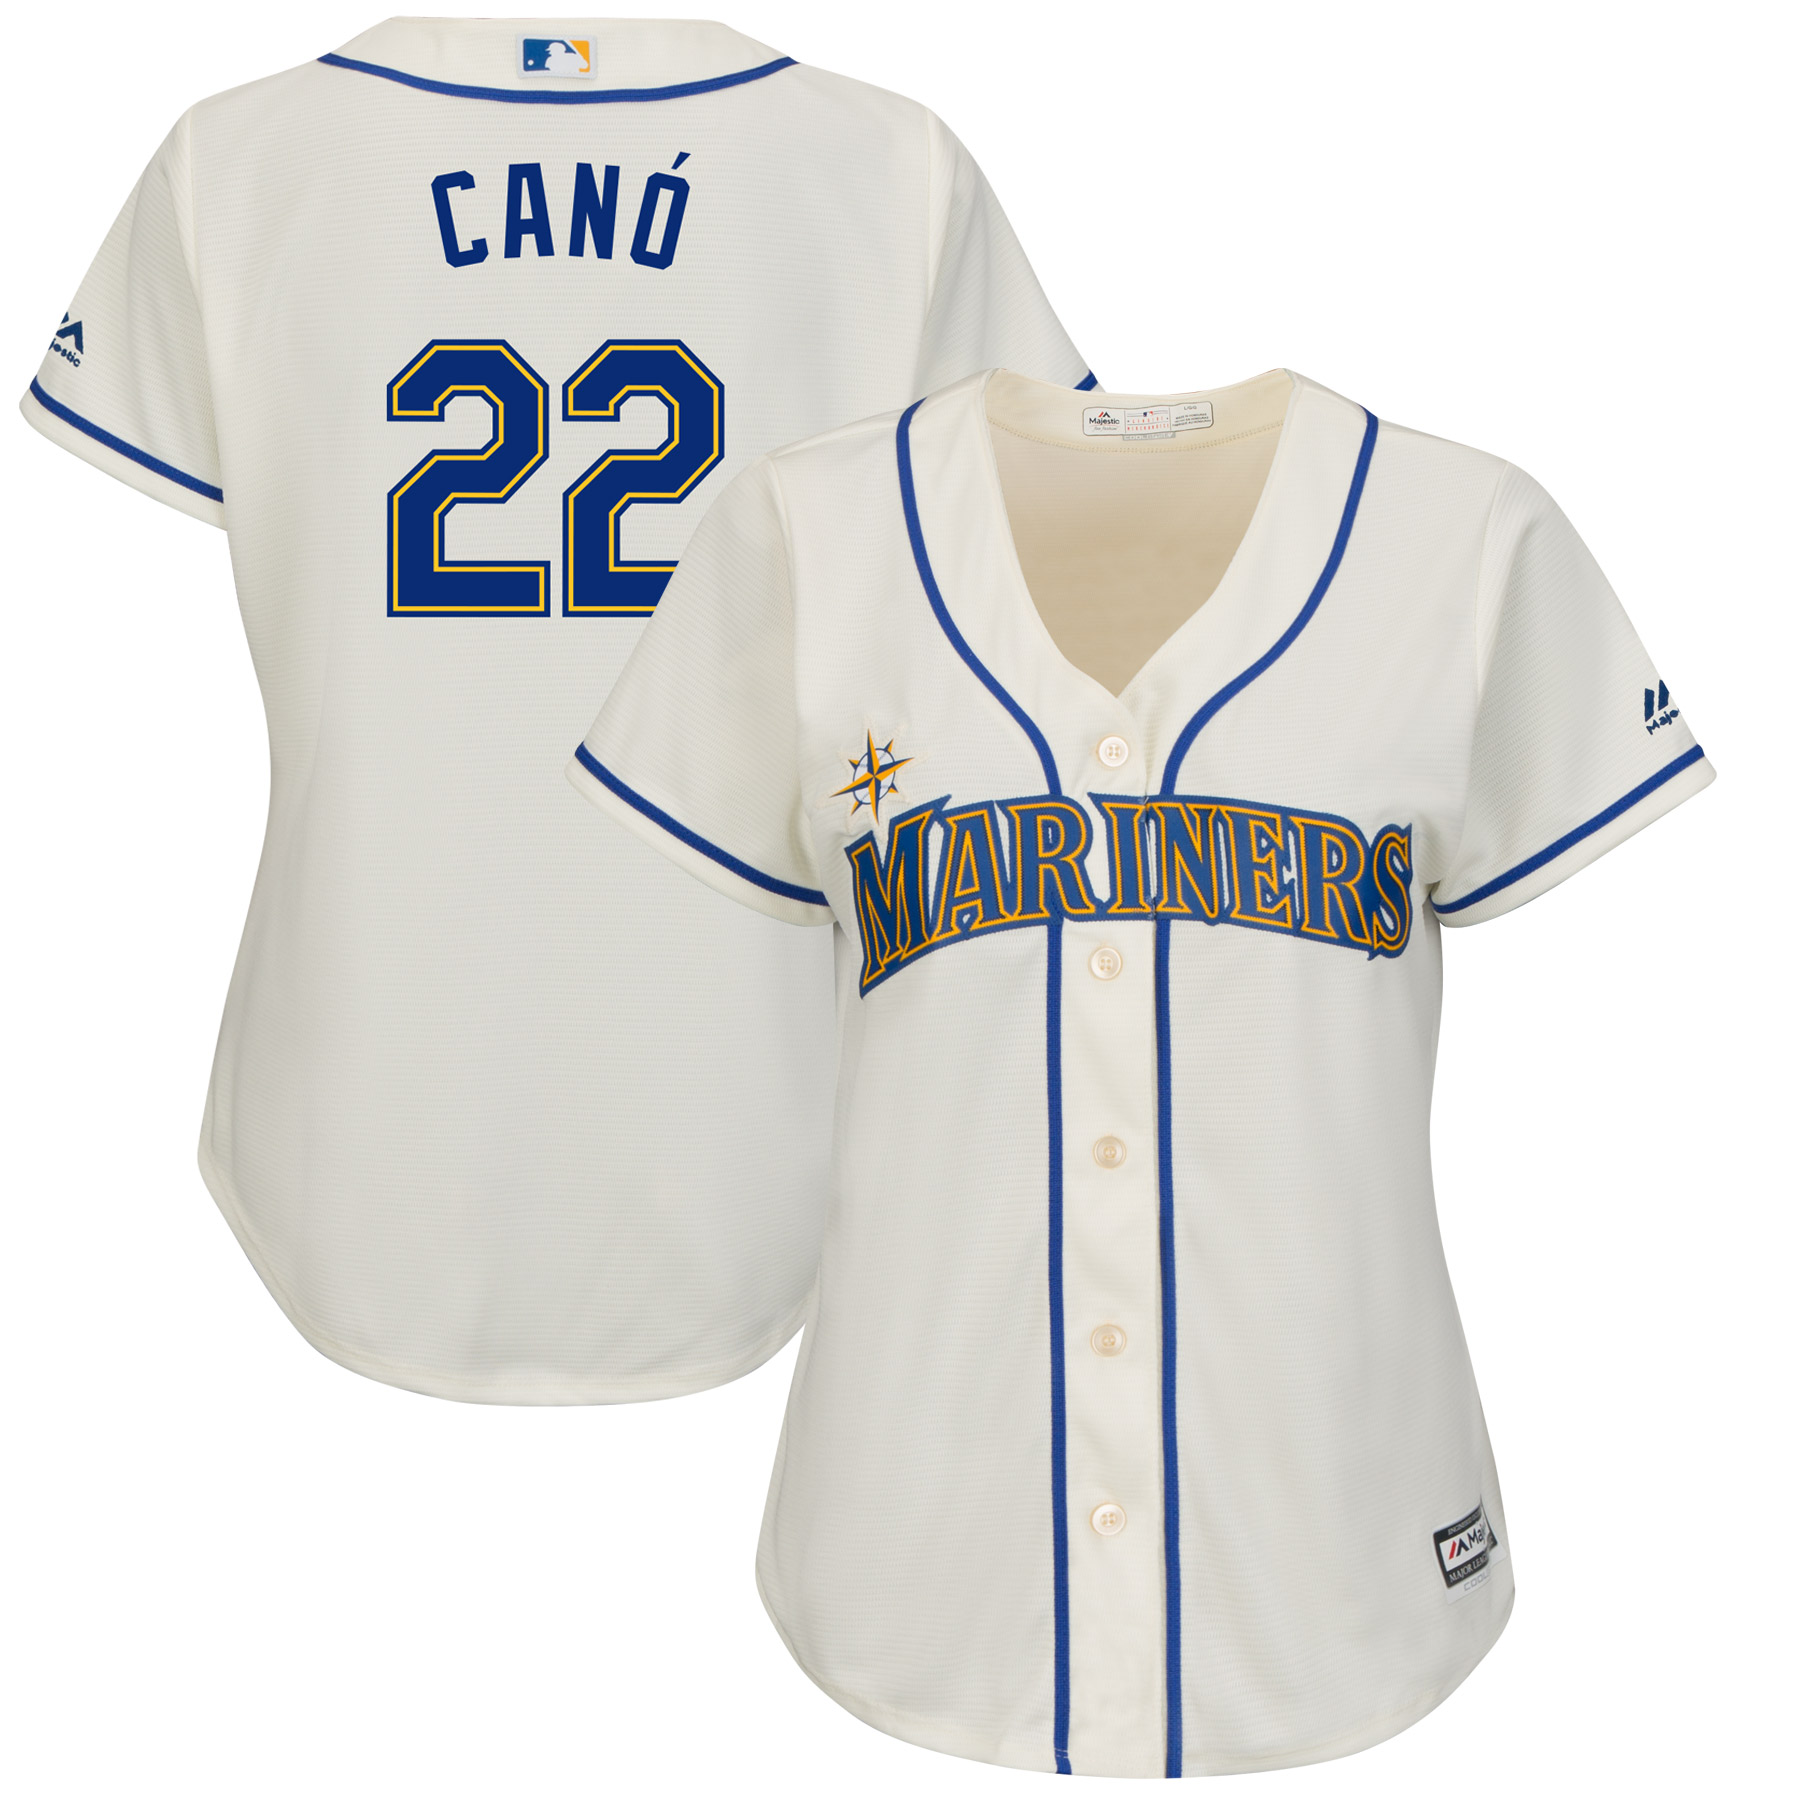 Robinson Cano Seattle Mariners Majestic Women's Alternate Cool Base Replica Player Jersey Cream by MAJESTIC LSG